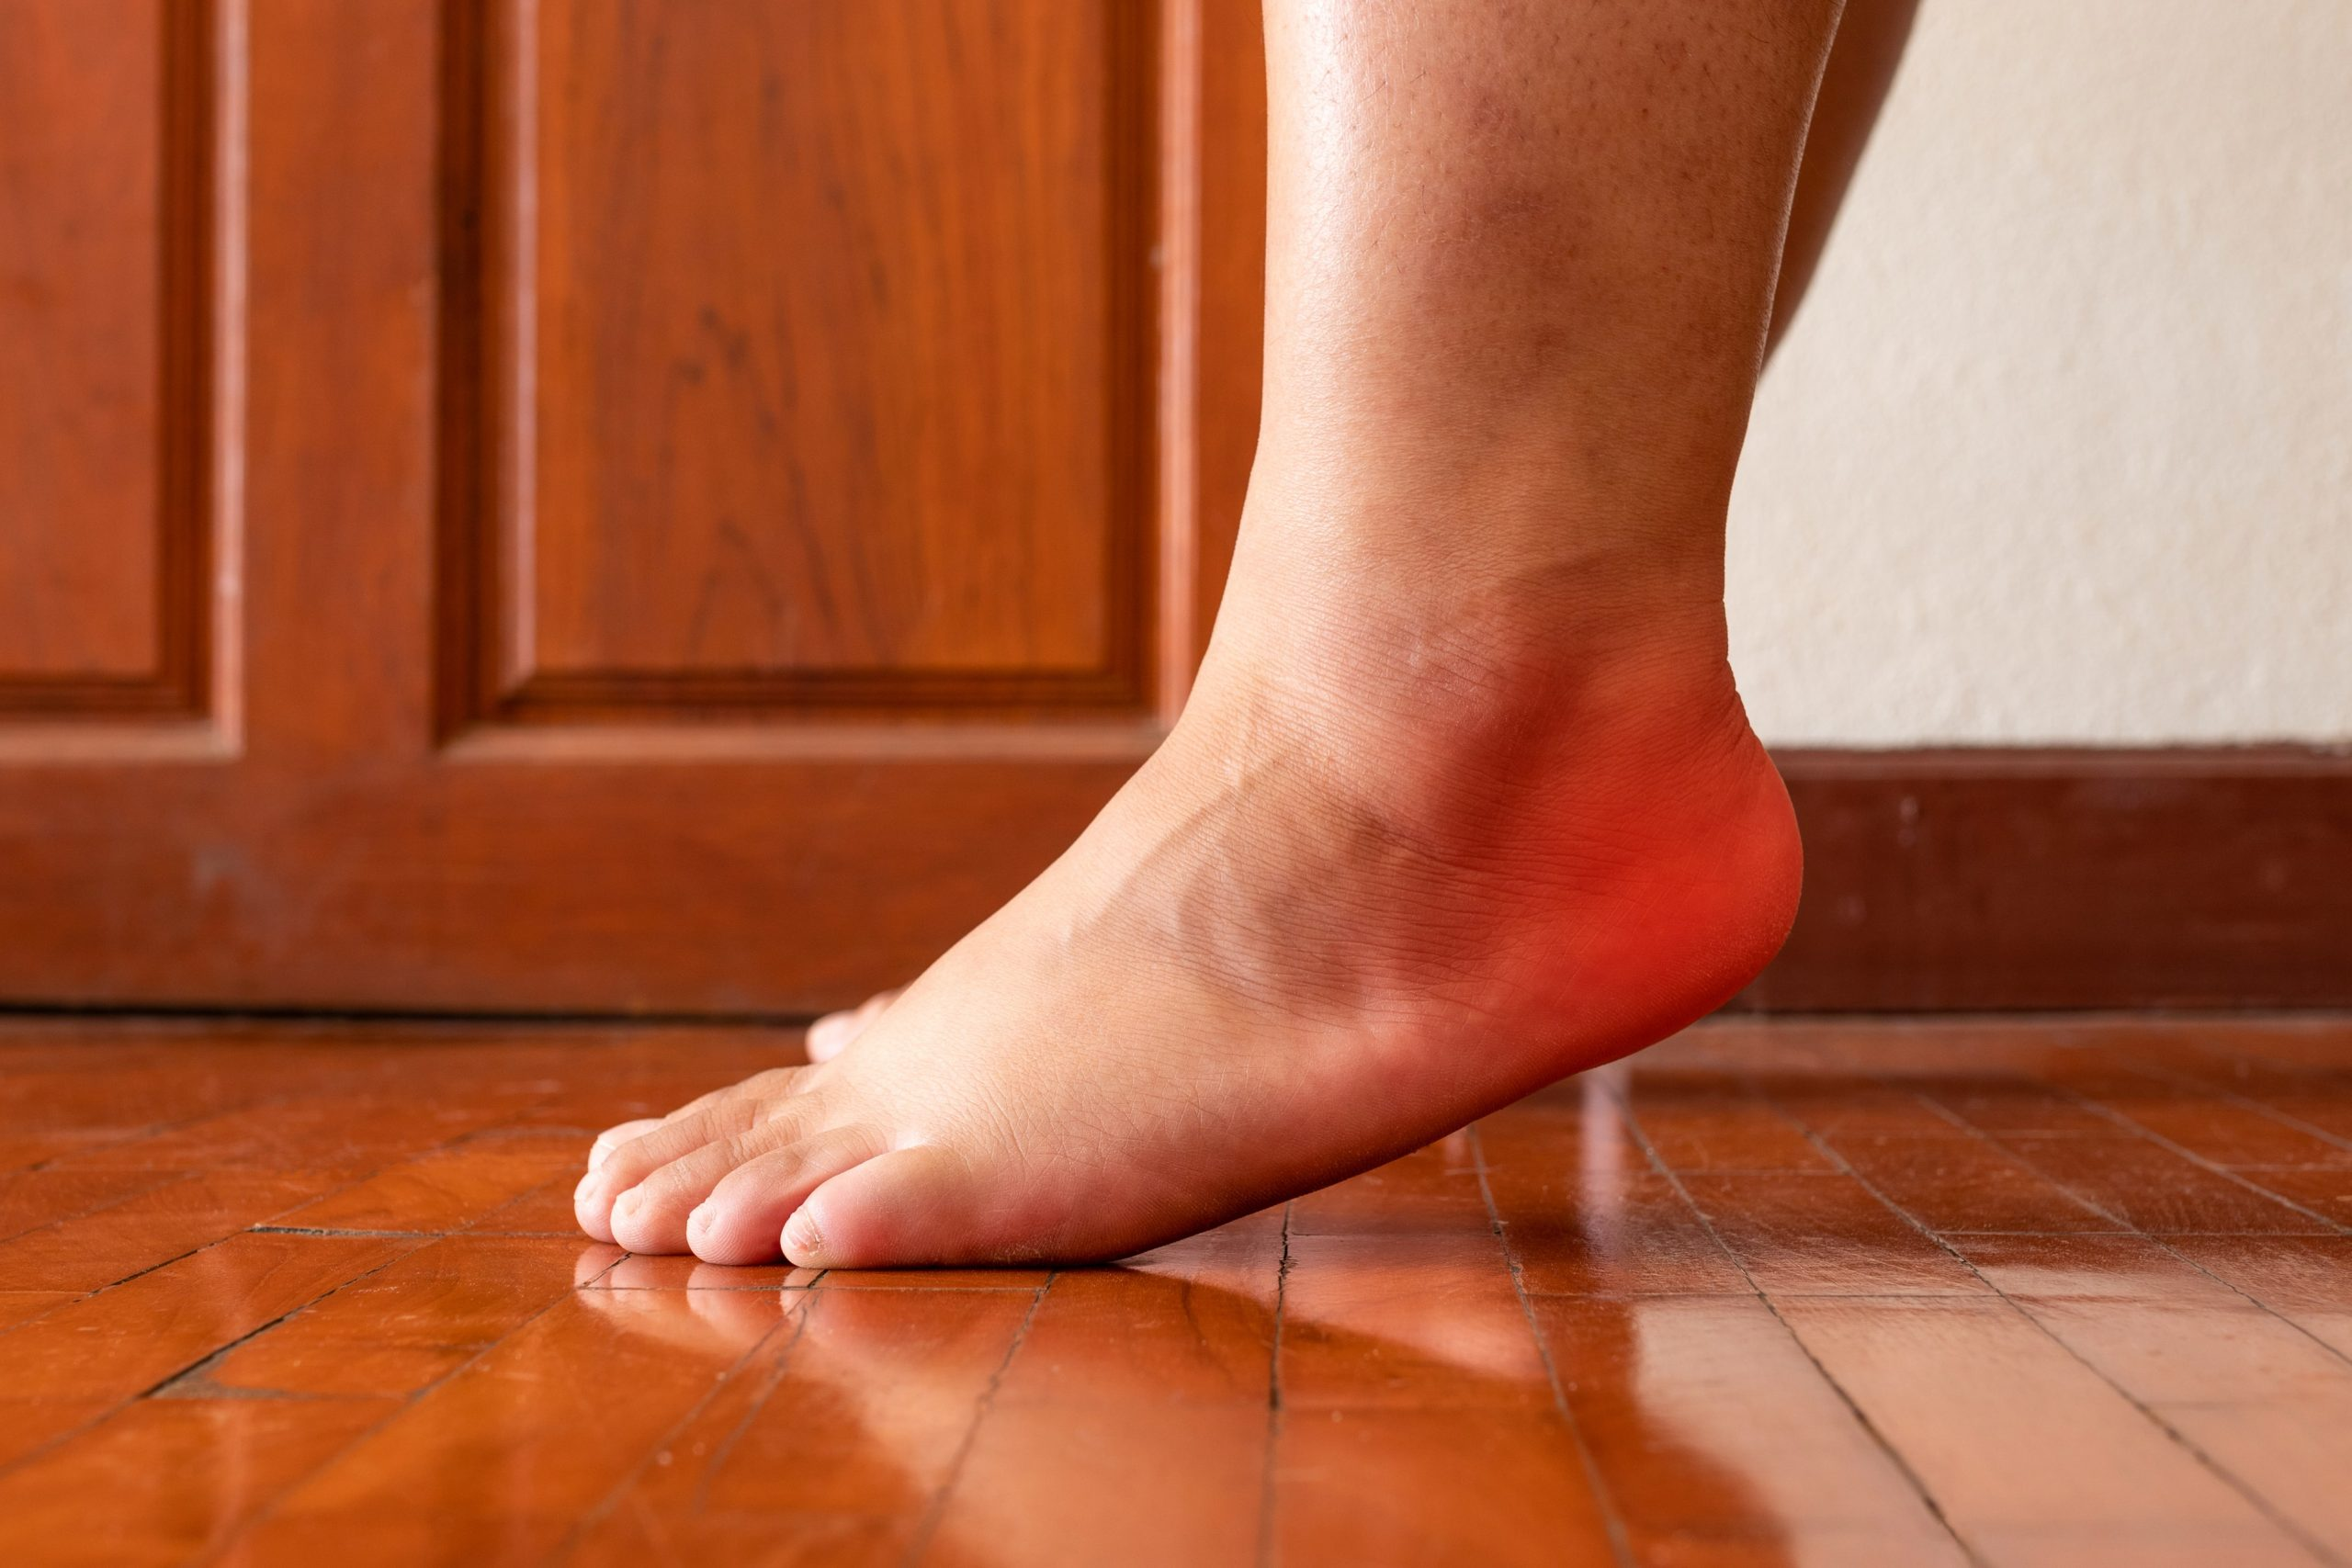 How You Can Treat Plantar Fasciitis at Home